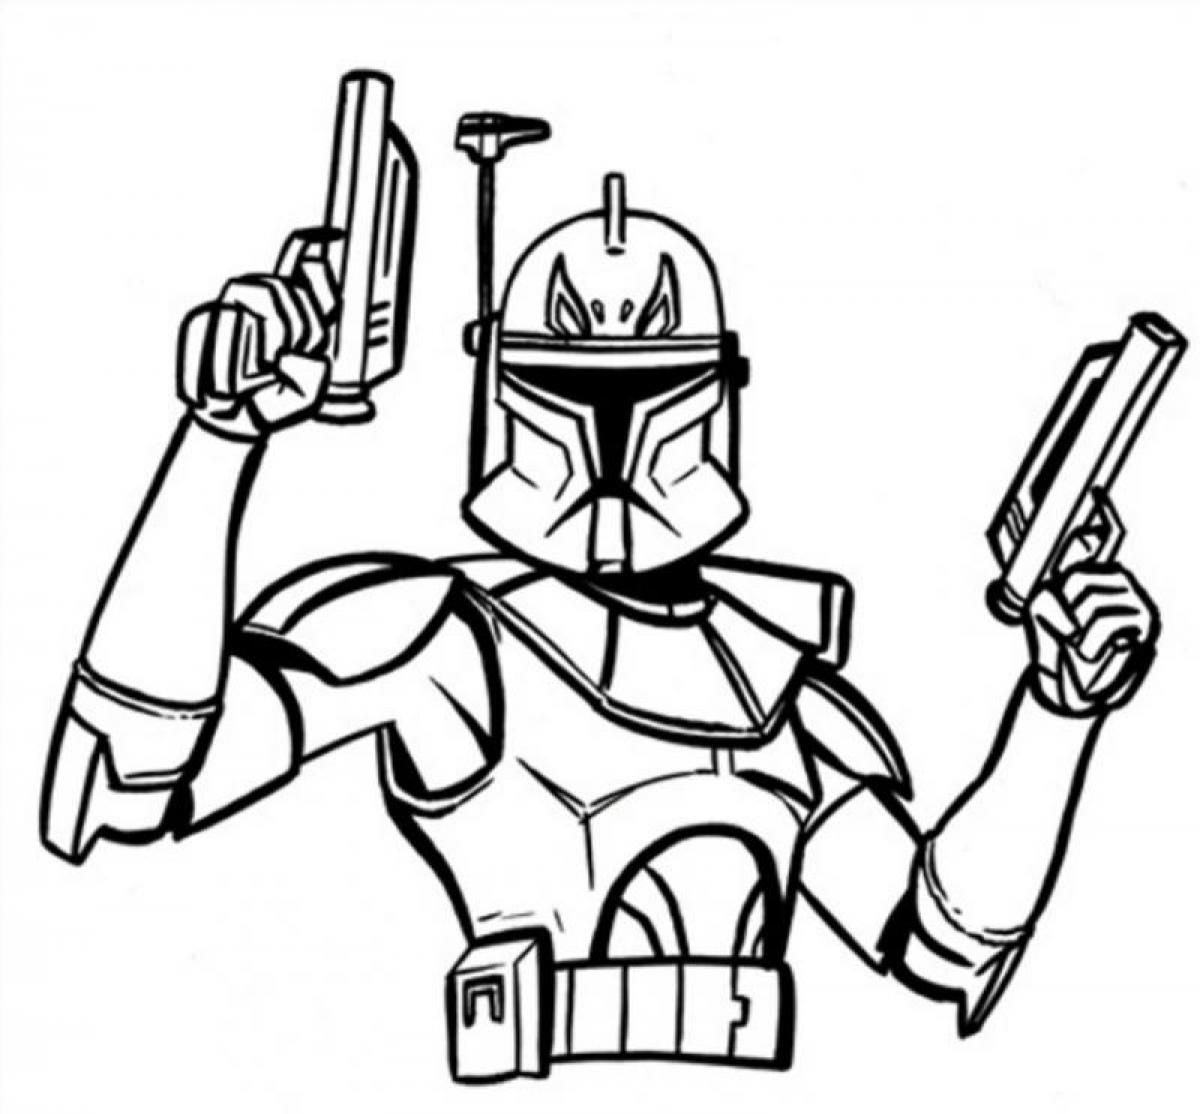 Darth Vader mask 1 Coloring Page - Free Coloring Pages Online | 1114x1200